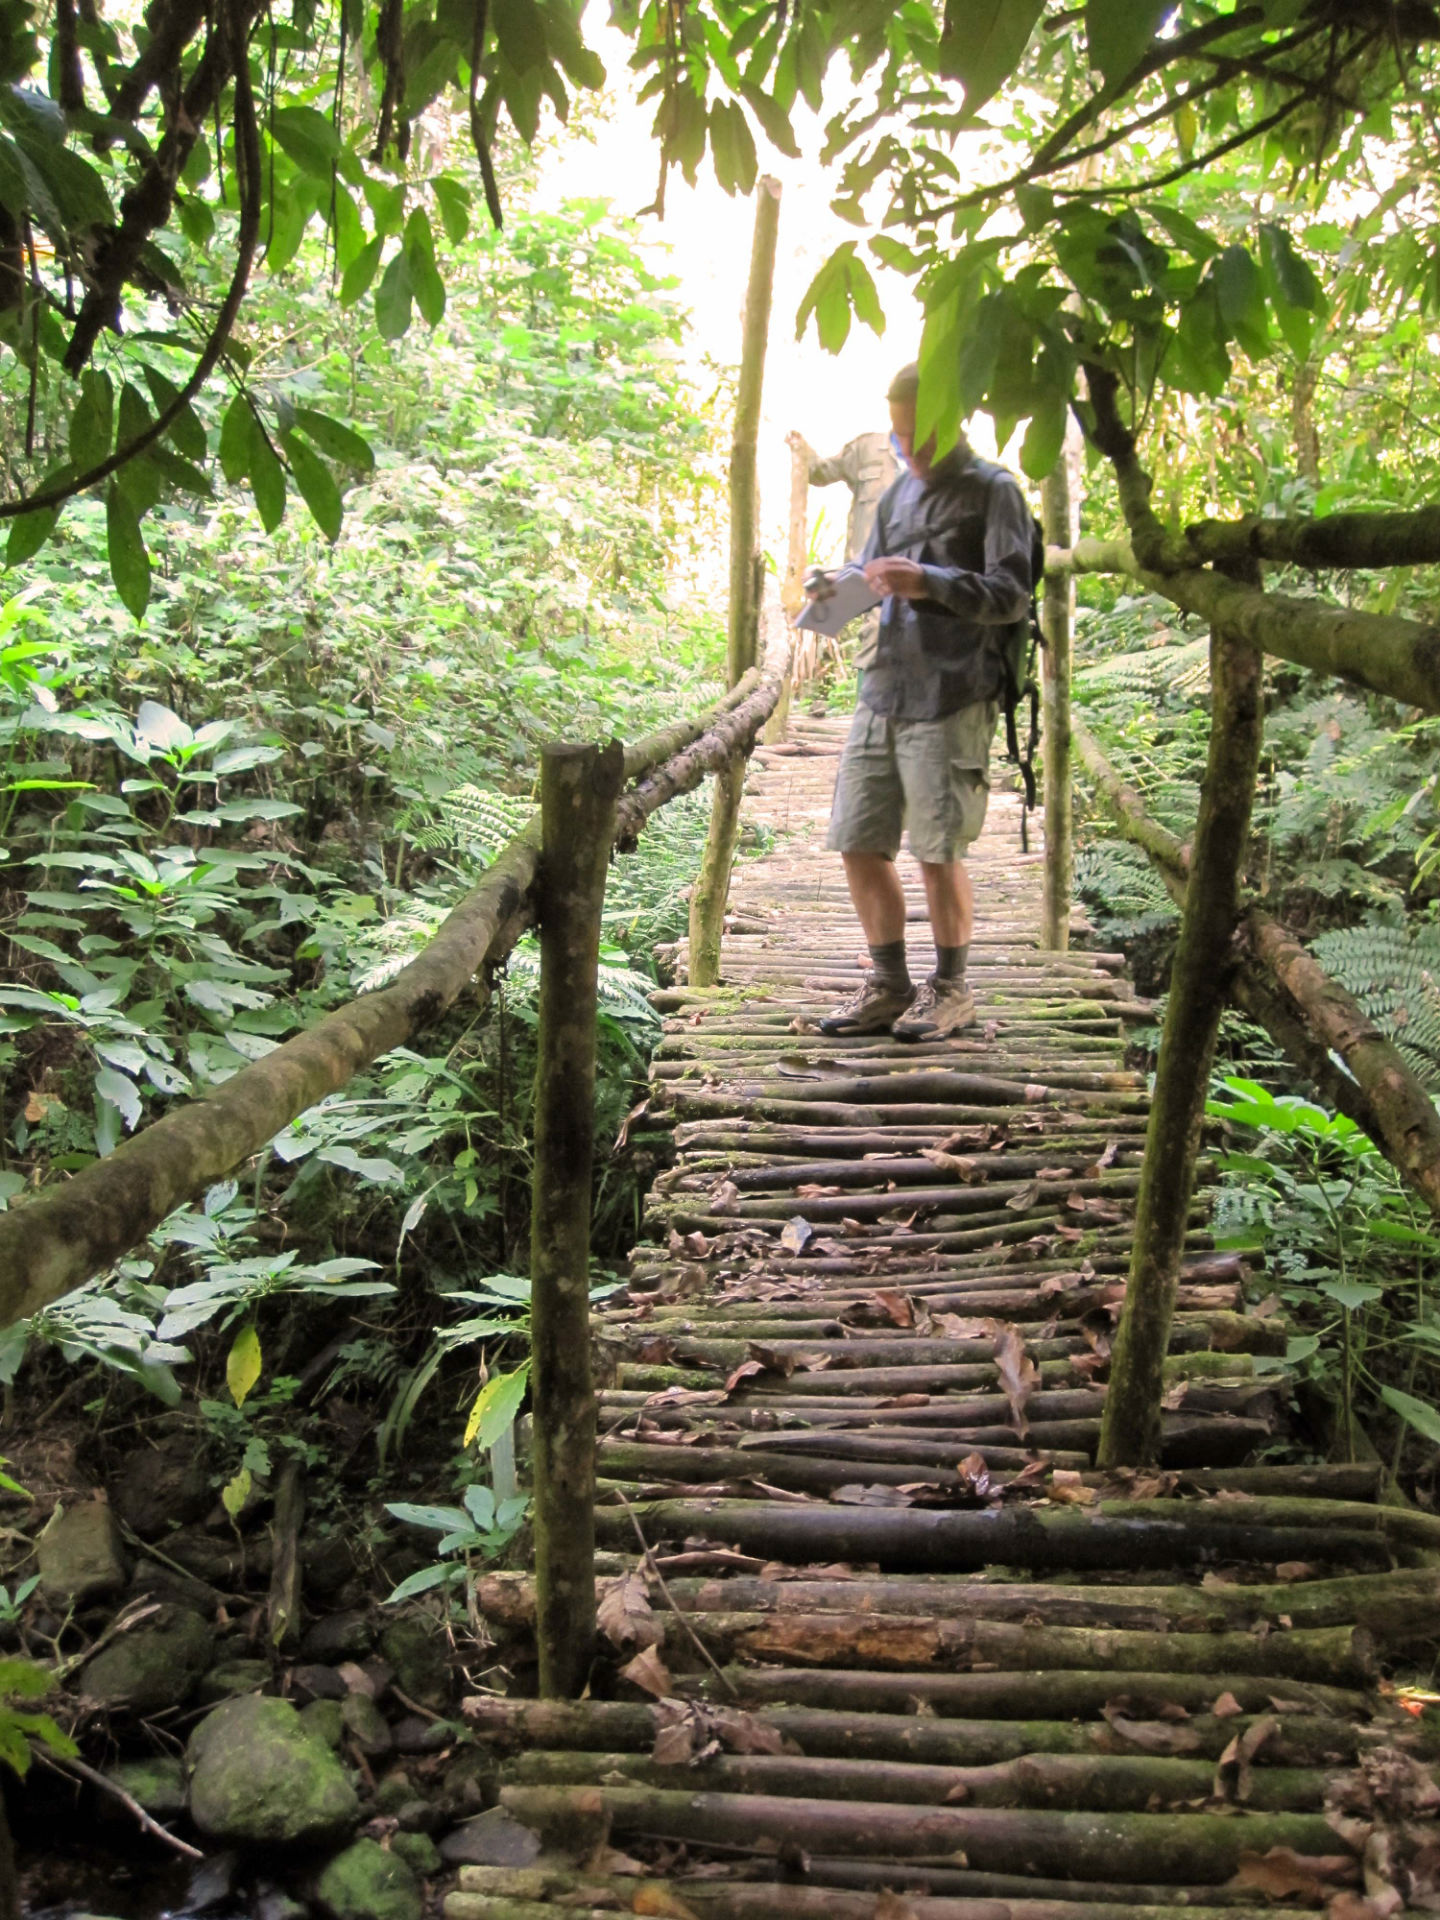 Bridge over the River, Bwindi.JPG